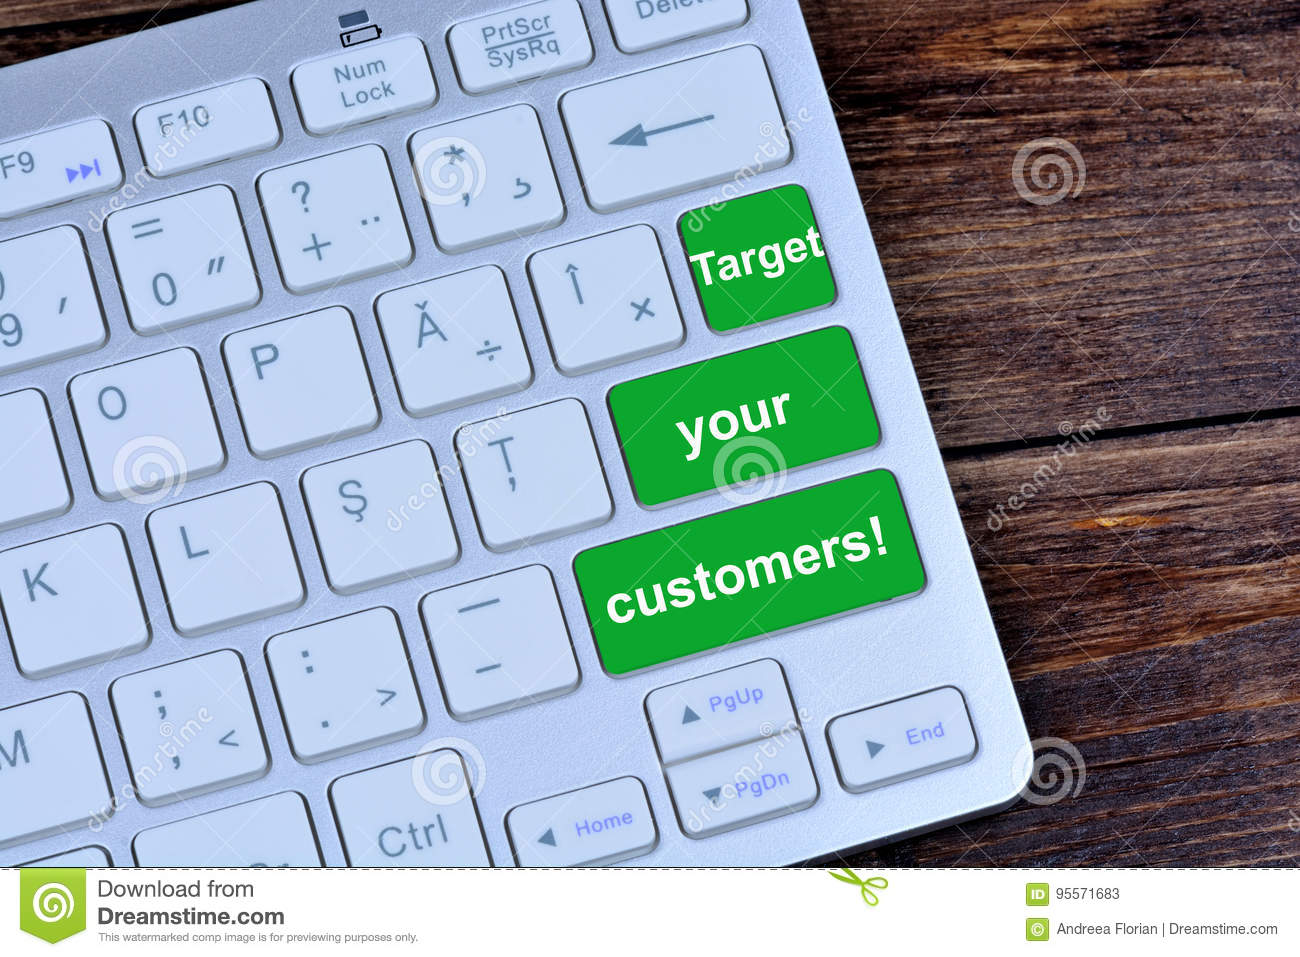 Target your customers on keyboard buttons